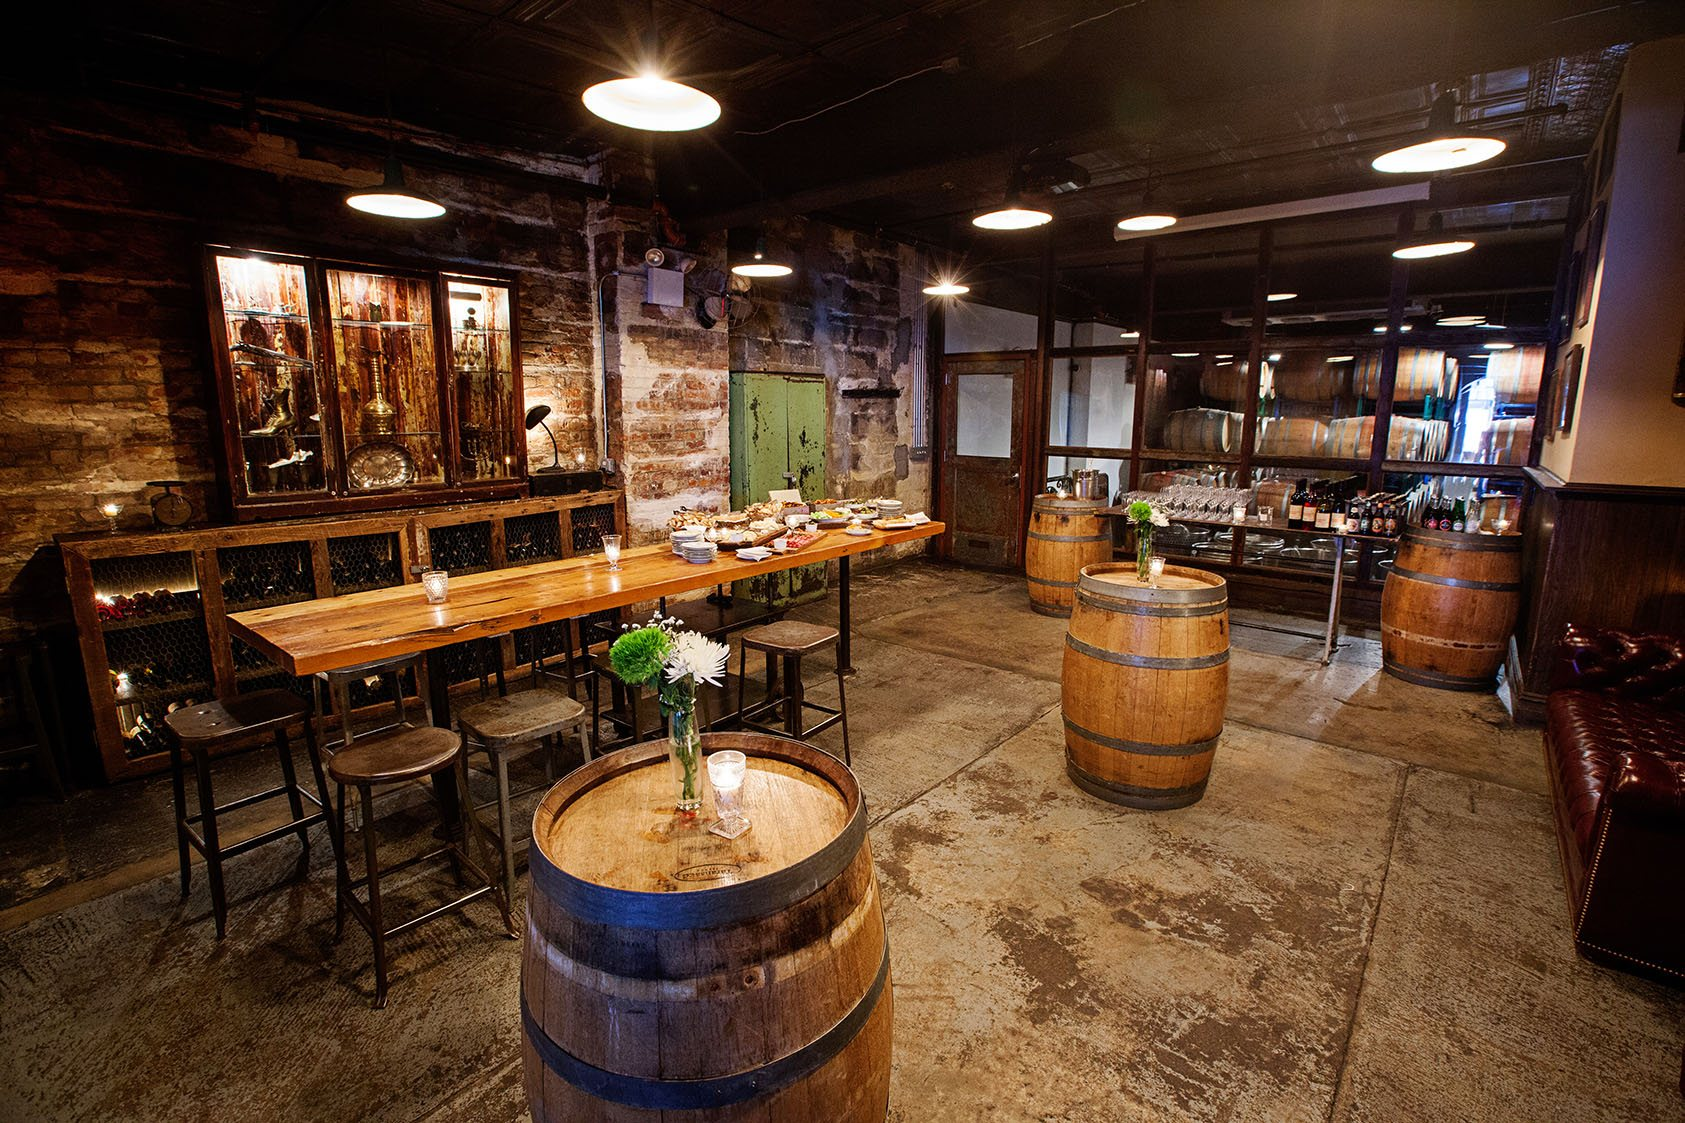 Corporate event photo gallery - Small event space brooklyn plan ...